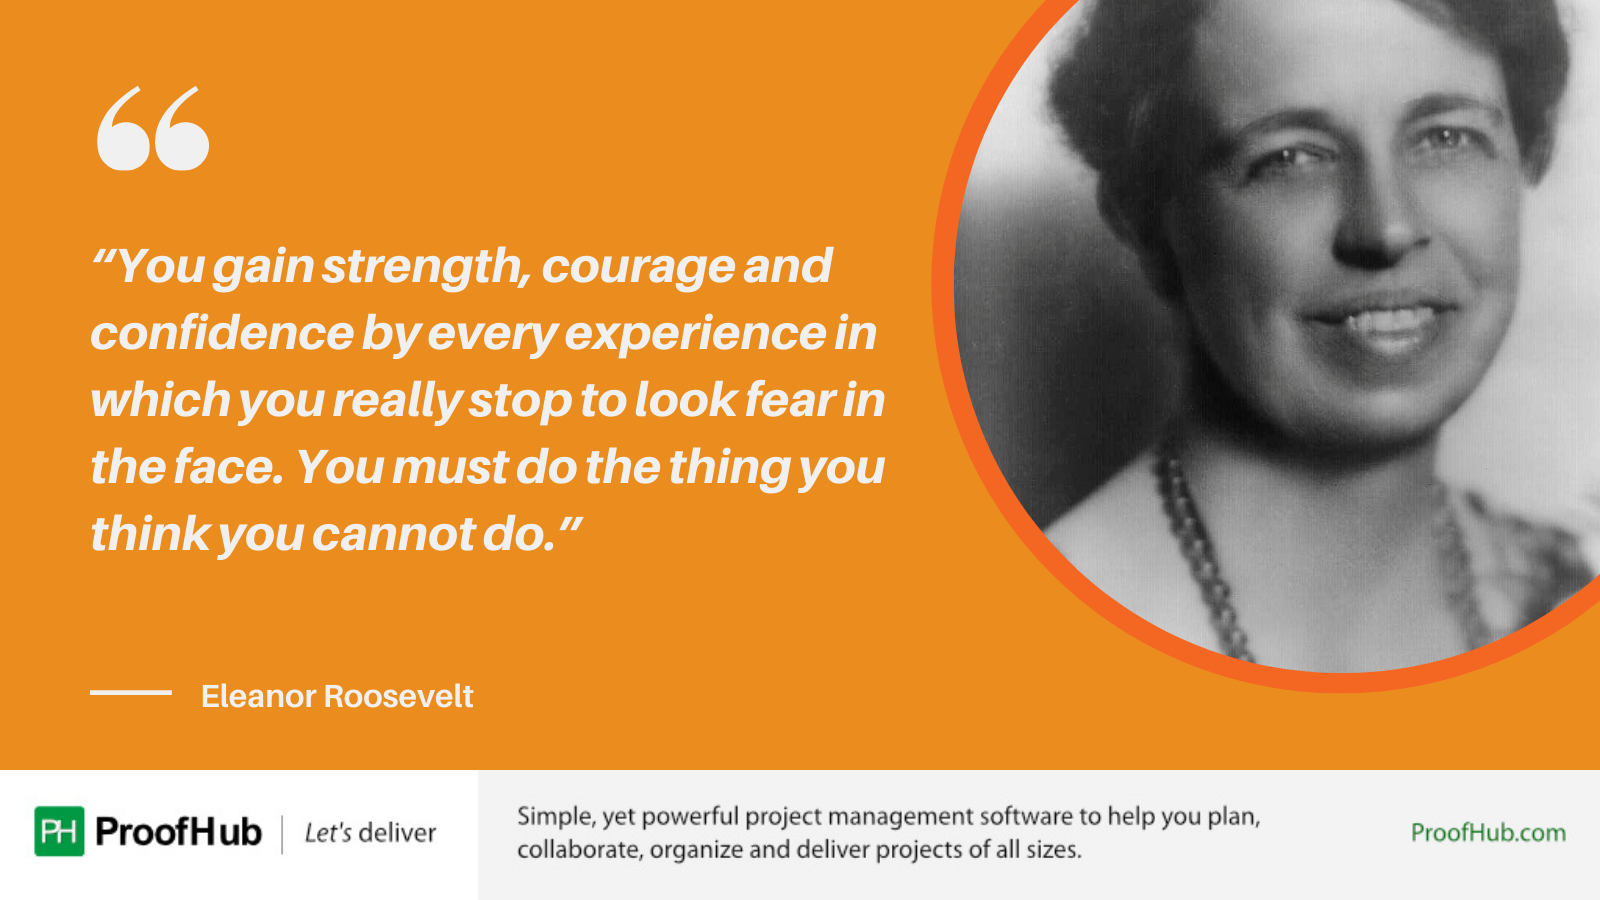 You gain strength, courage and confidence by every experience in which you really stop to look fear in the face. You must do the thing you think you cannot do. quote by Eleanor Roosevelt